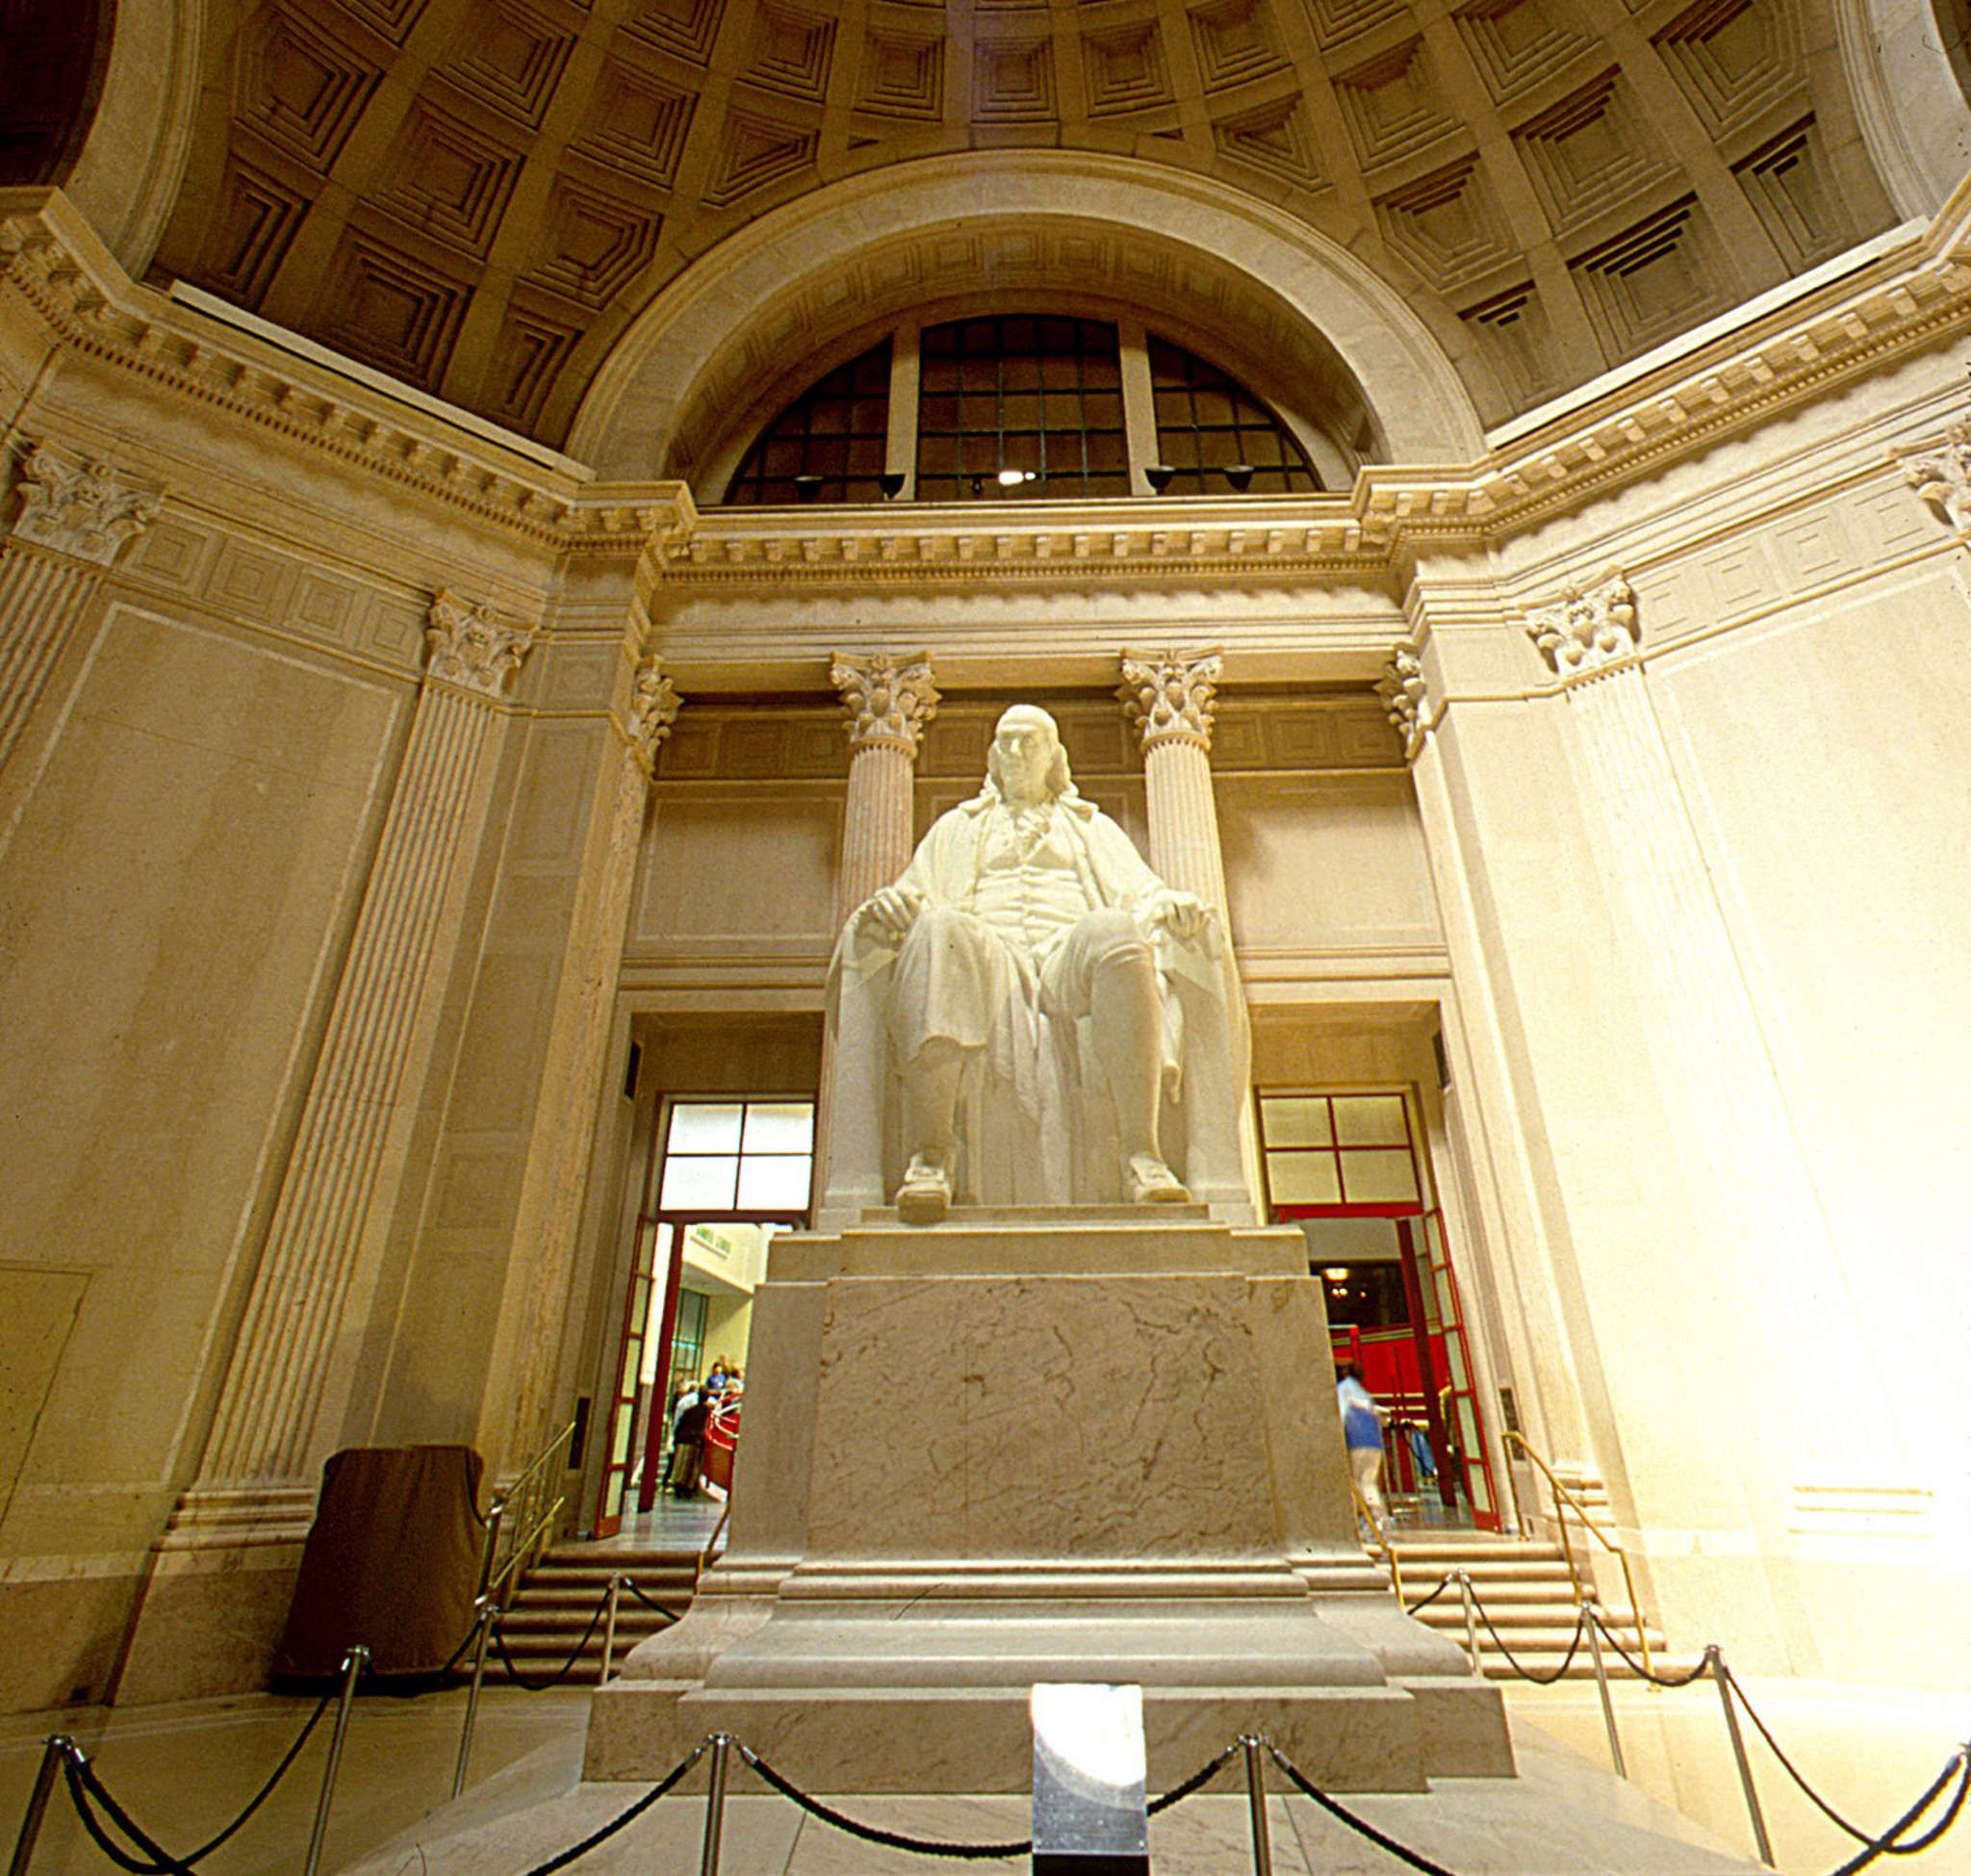 The Franklin Institute must have spent millions fighting a discrimination lawsuit filed in 2013. A judge ruled against the institute regarding its policy to charge admission for disabled visitors´ attendants.